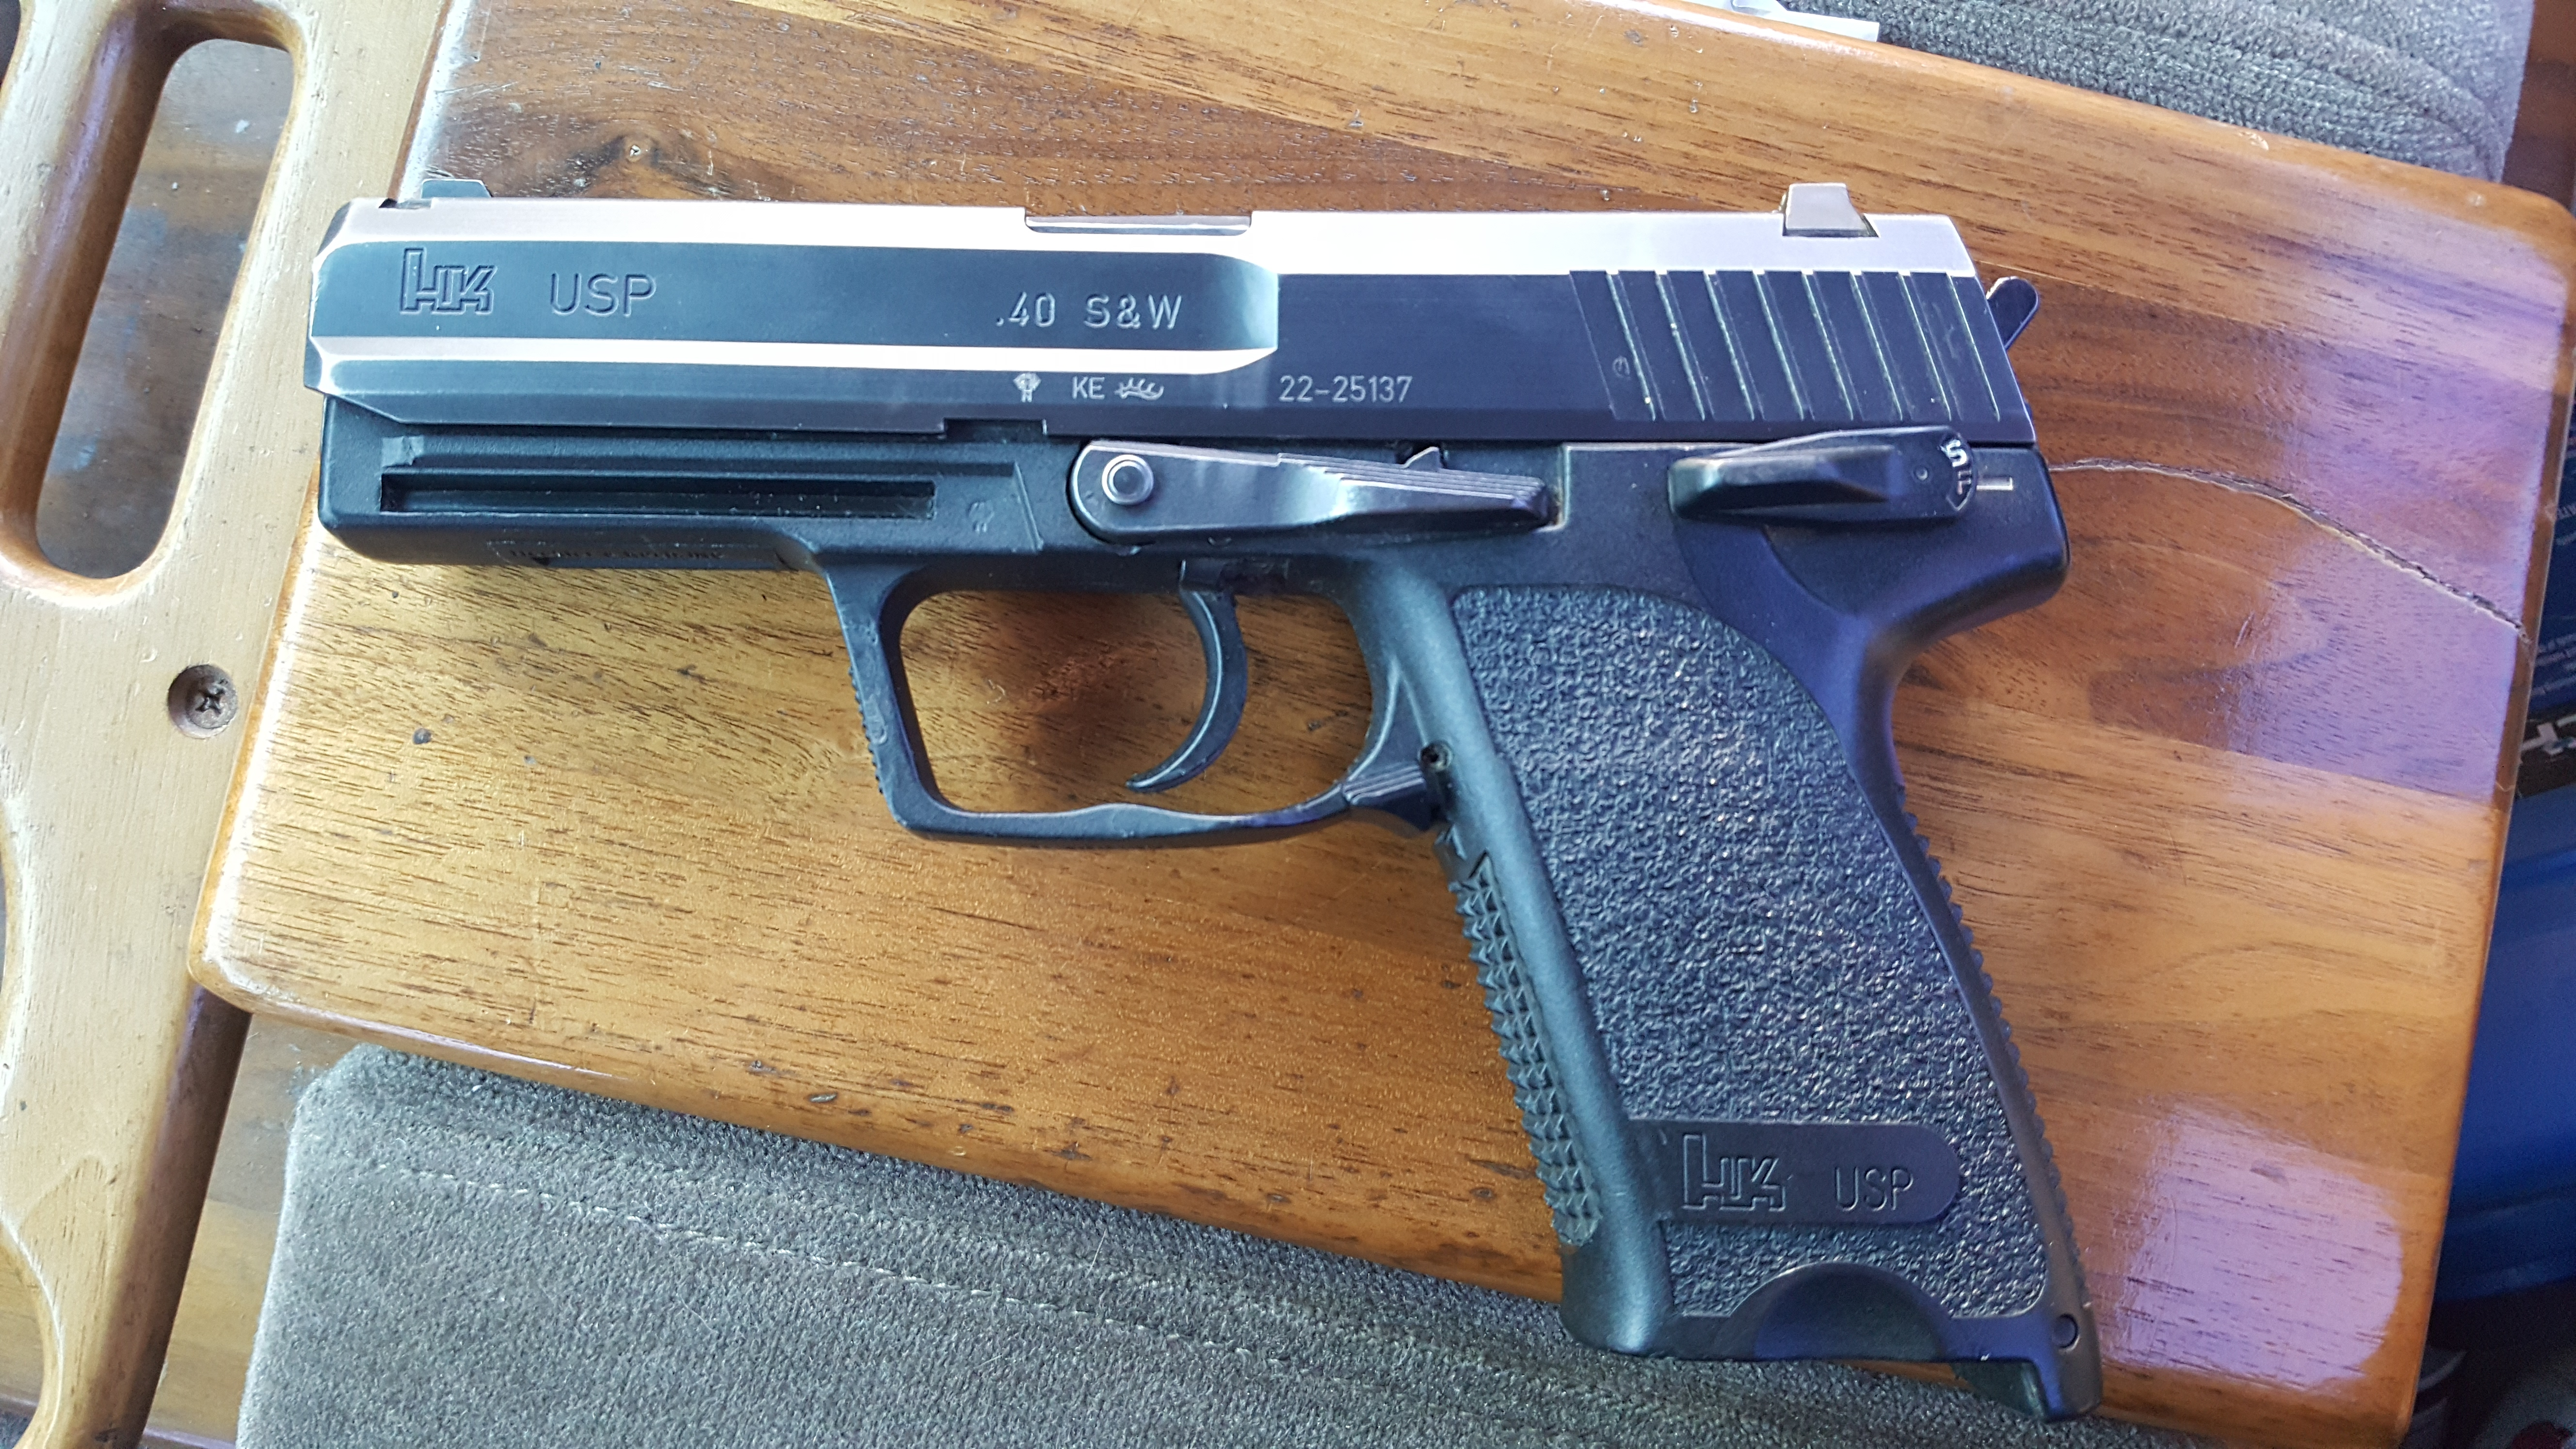 Recieved my police trade in USP today